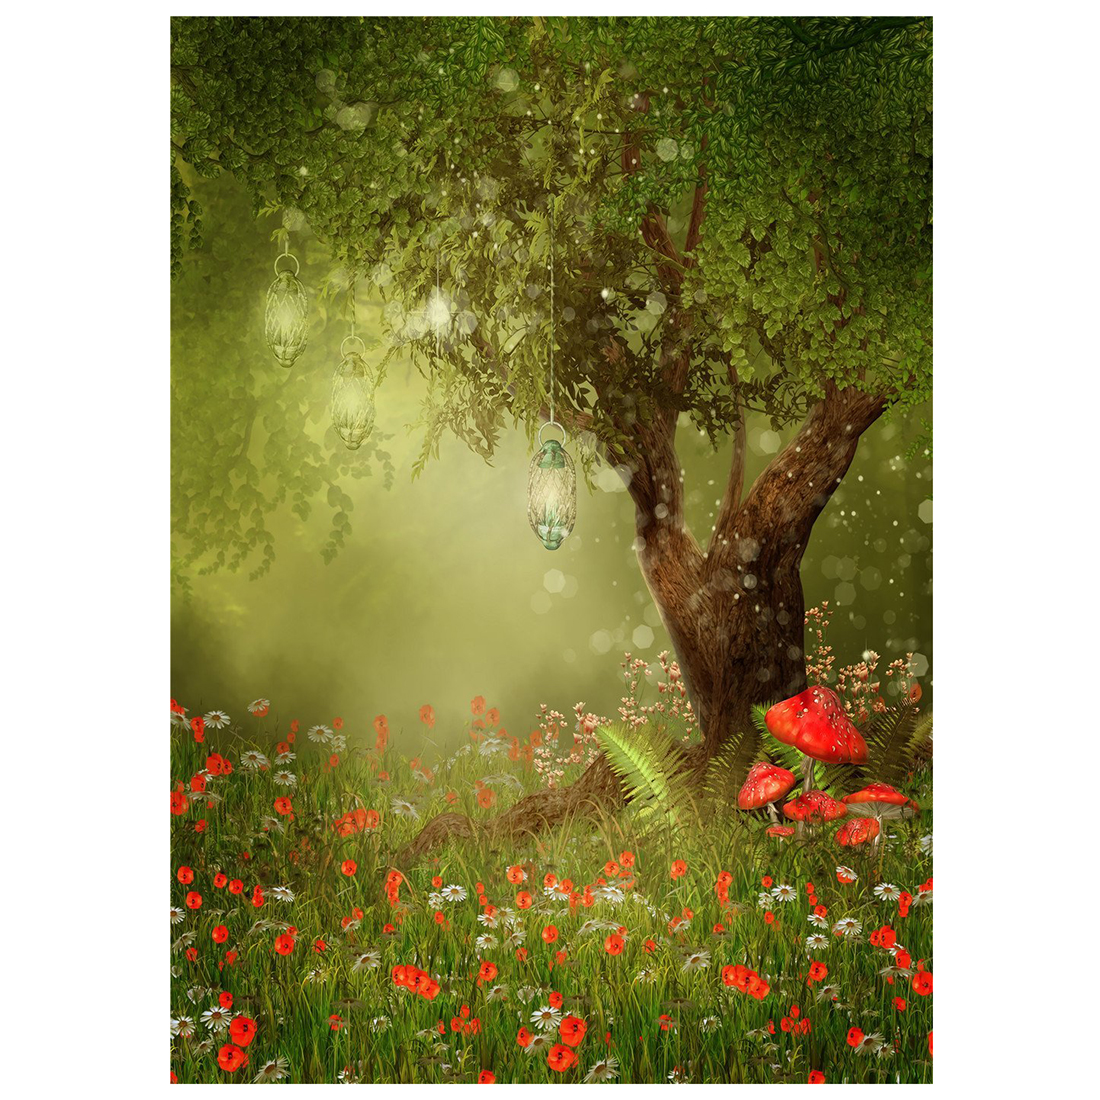 3x5ft Spring Photography Props Red Mushroom Flowers Photo Studio Backgrounds Green Natural Scenery Tree Backdrops цена